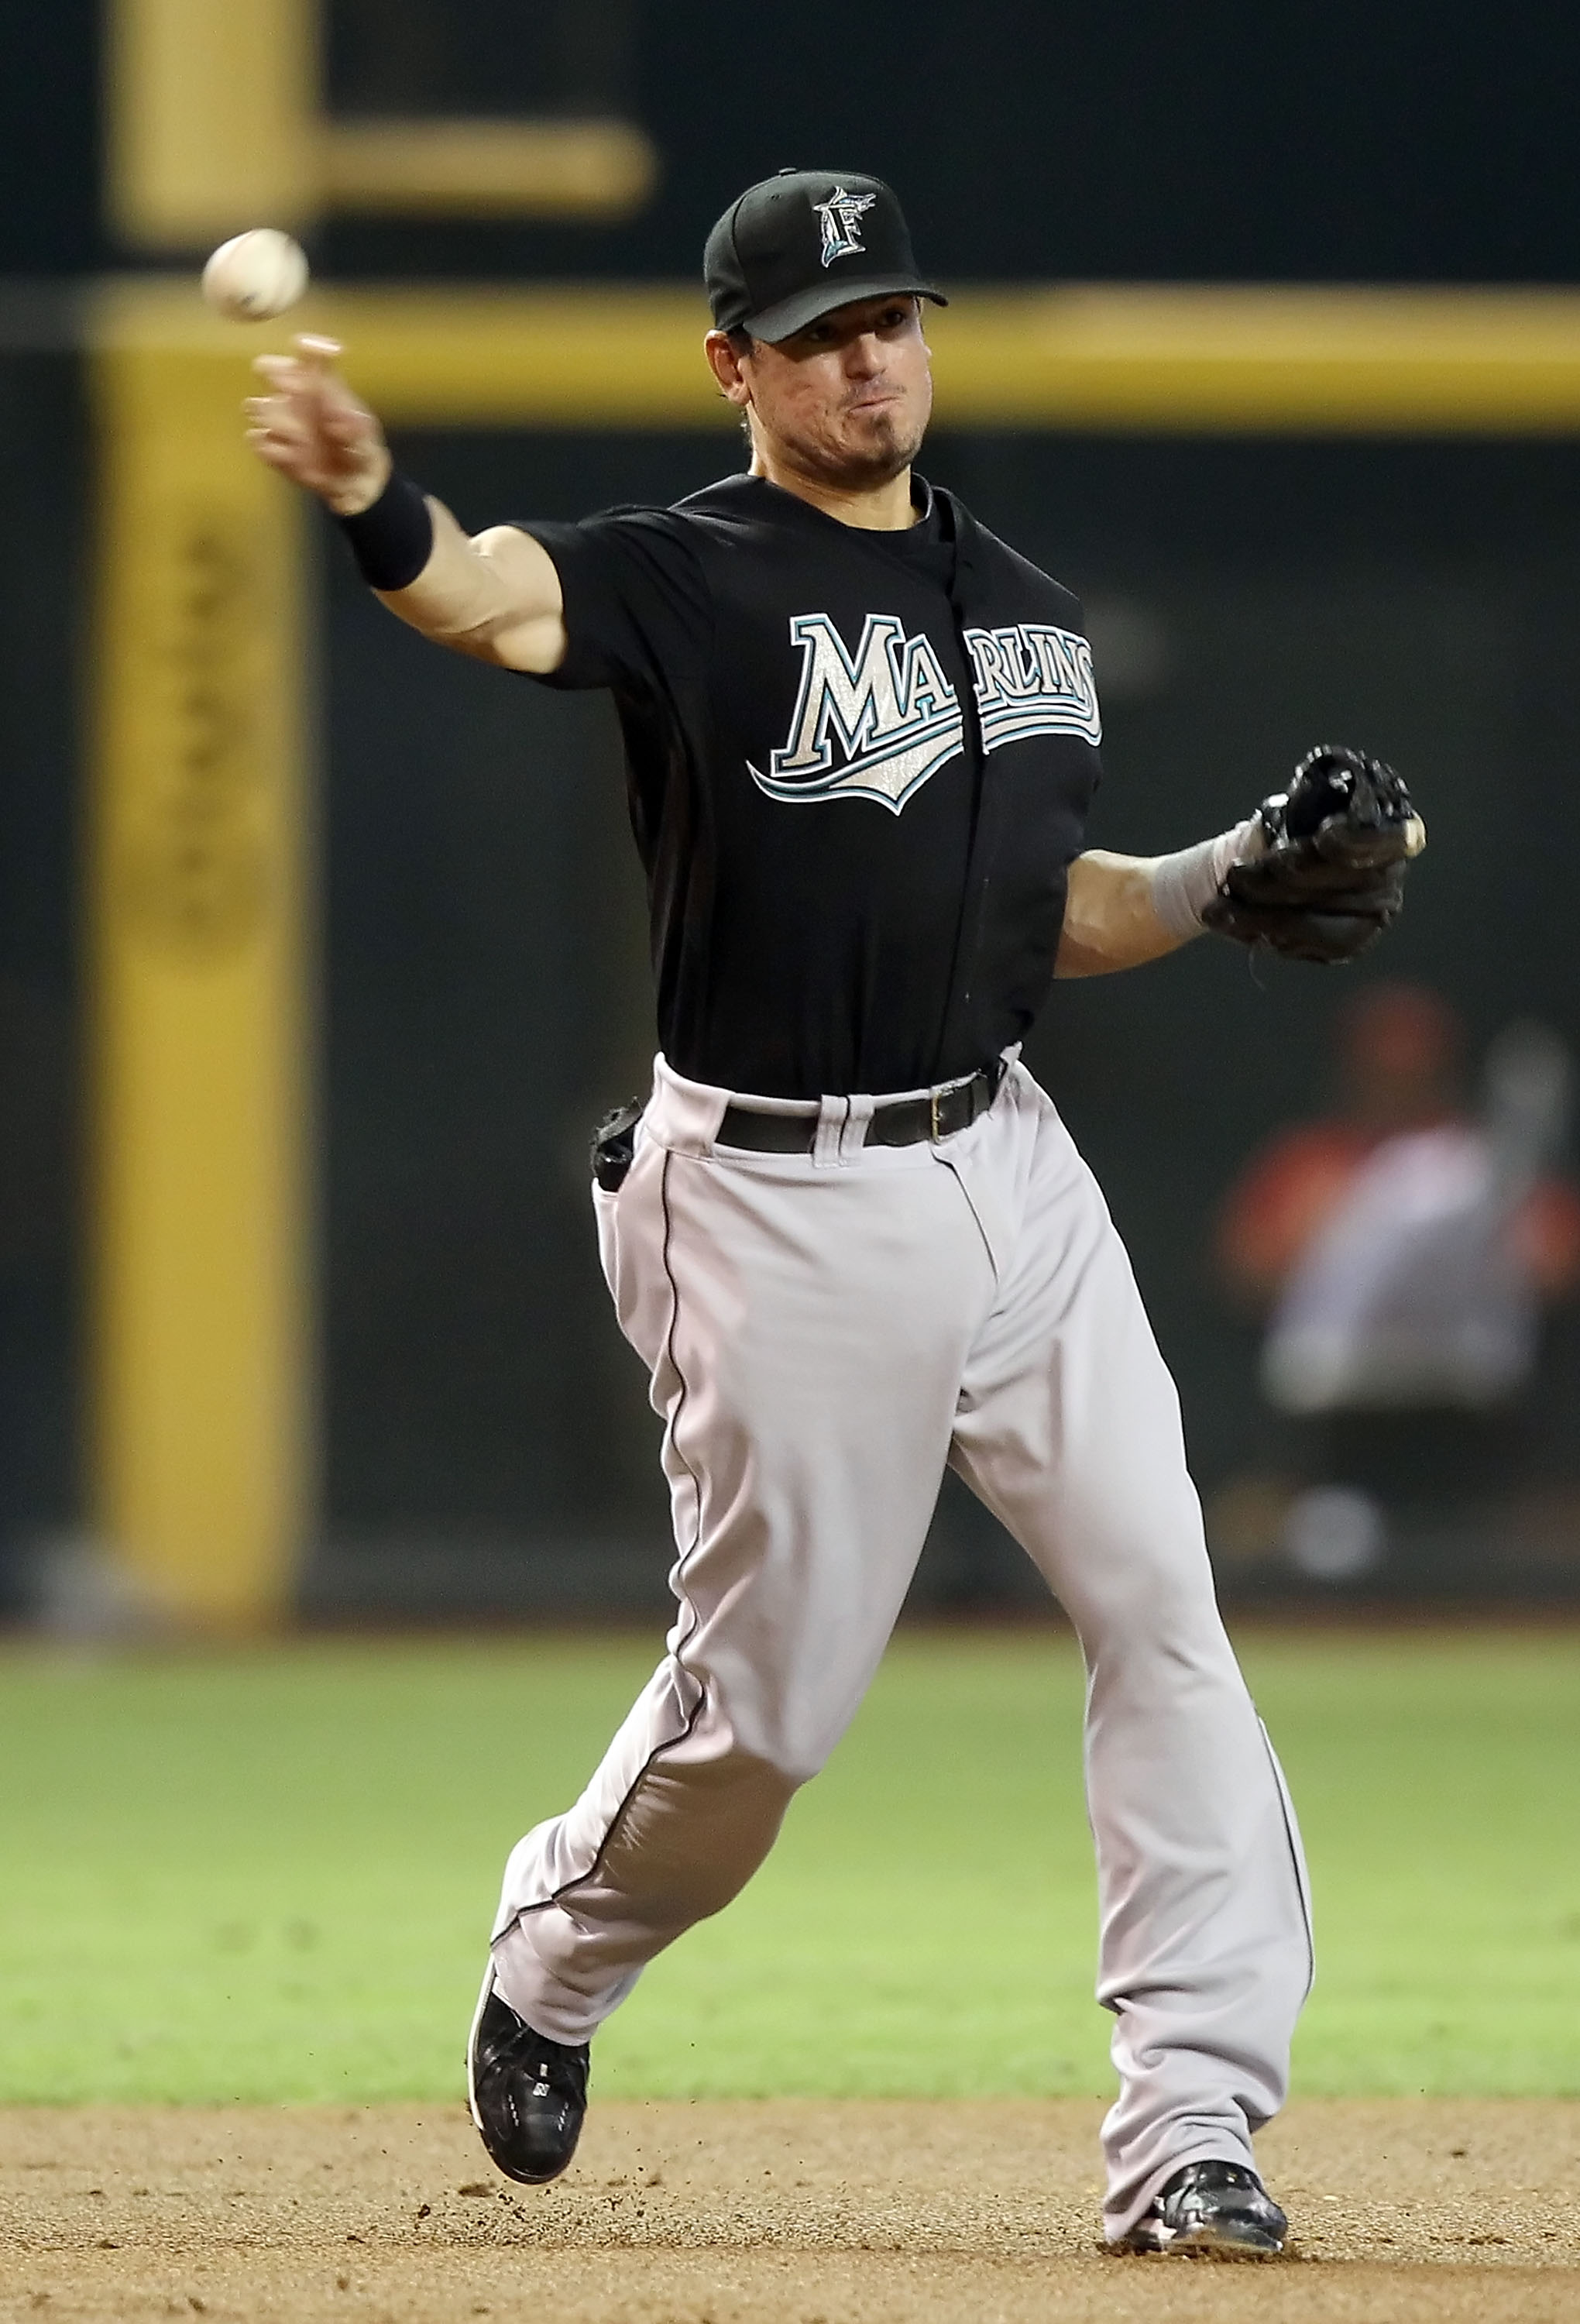 PHOENIX - JULY 08:  Infielder Jorge Cantu #3 of the Florida Marlins in action during the Major League Baseball game against the Arizona Diamondbacks at Chase Field on July 8, 2010 in Phoenix, Arizona. The Diamondbacks defeated the Marlins 10-4.  (Photo by